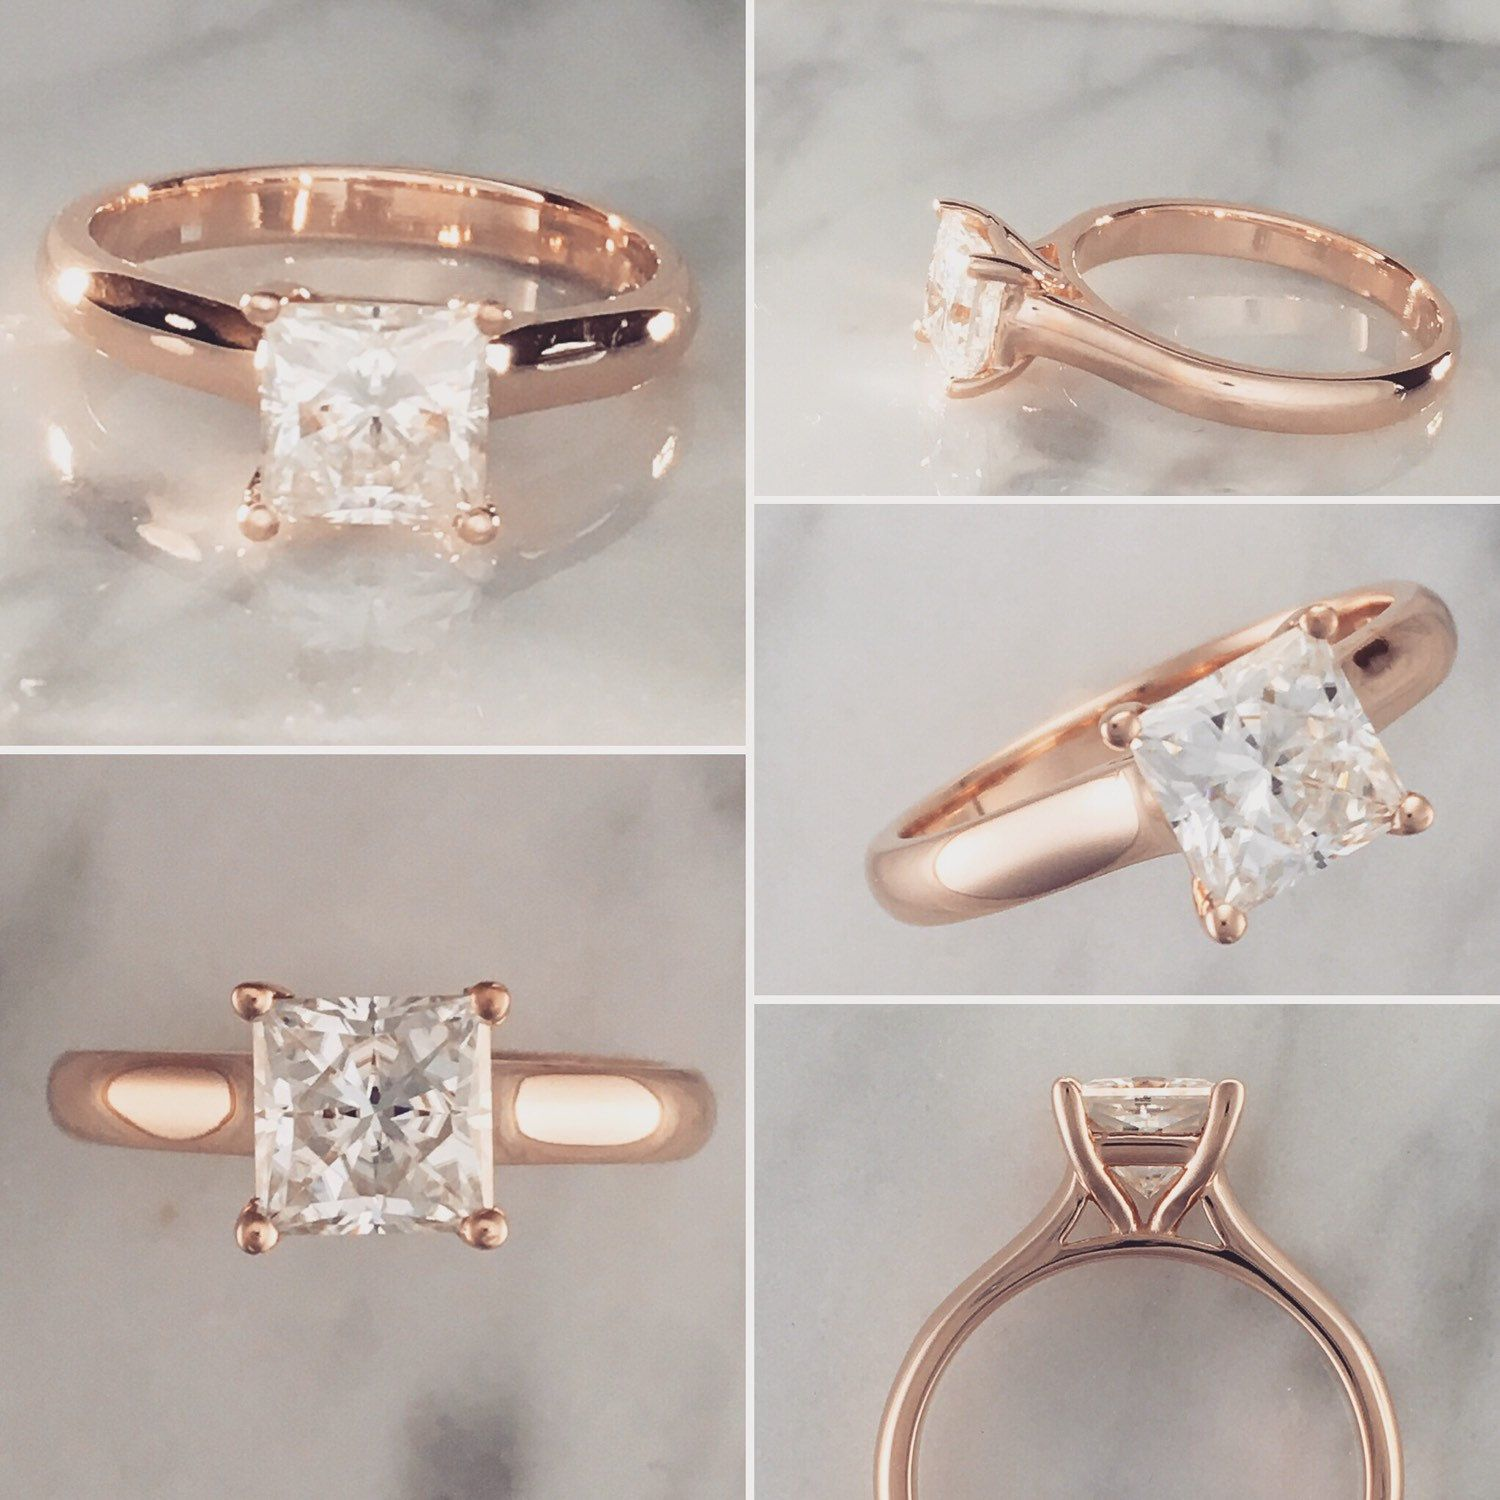 Princess Cut Solitaire Engagement Ring 6 5mm to 7mm Stone 14K